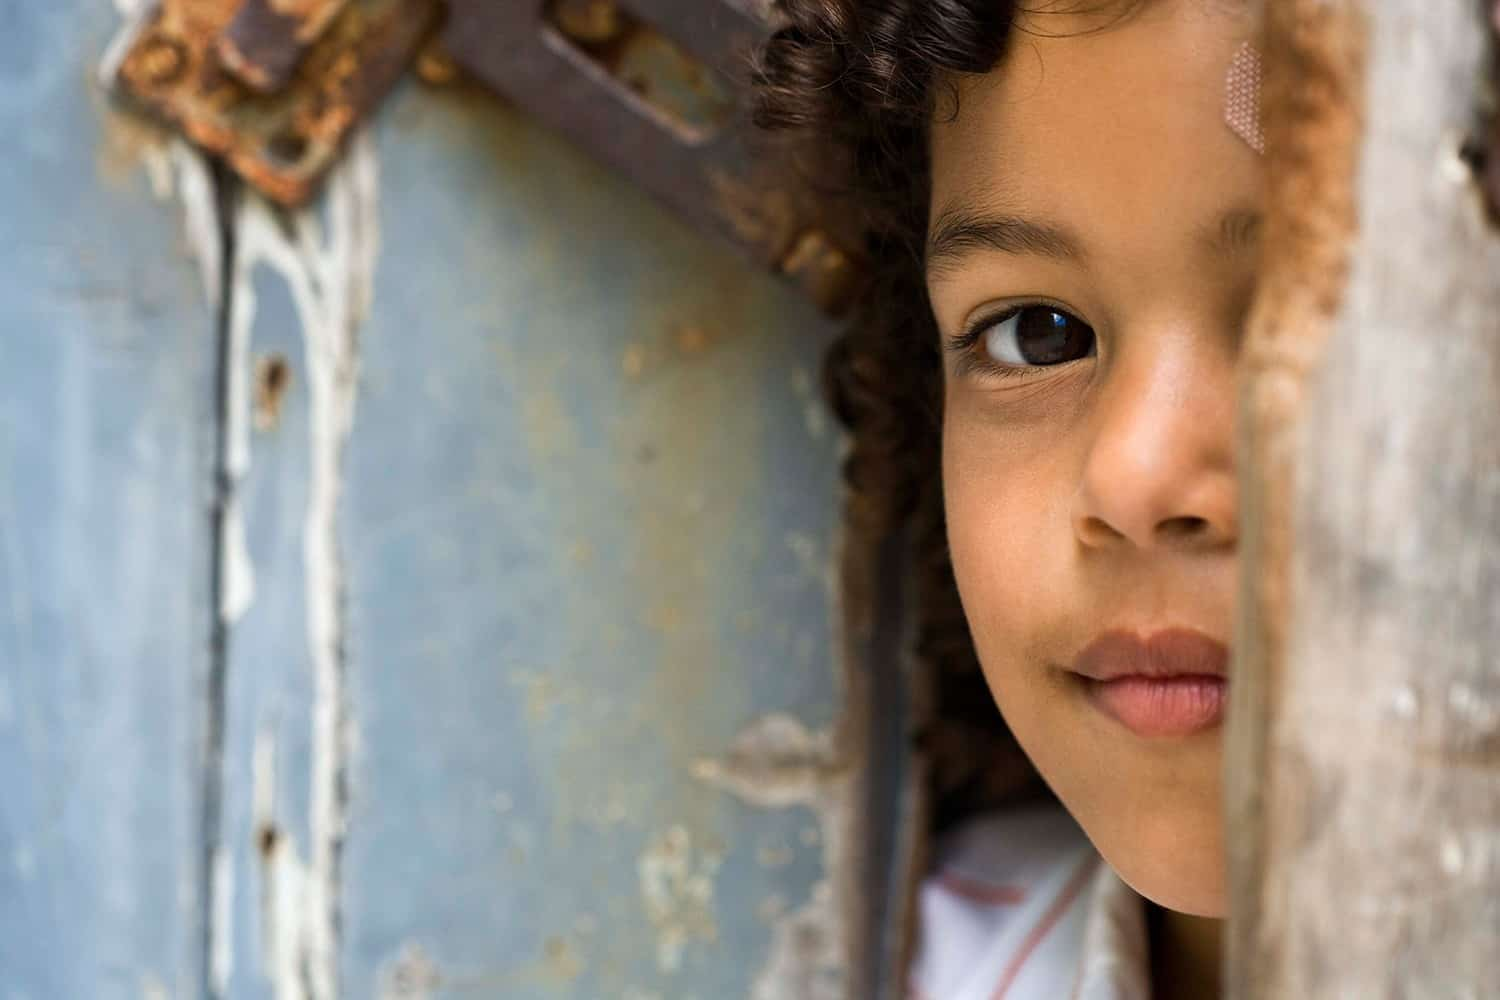 How to Help Children at Risk